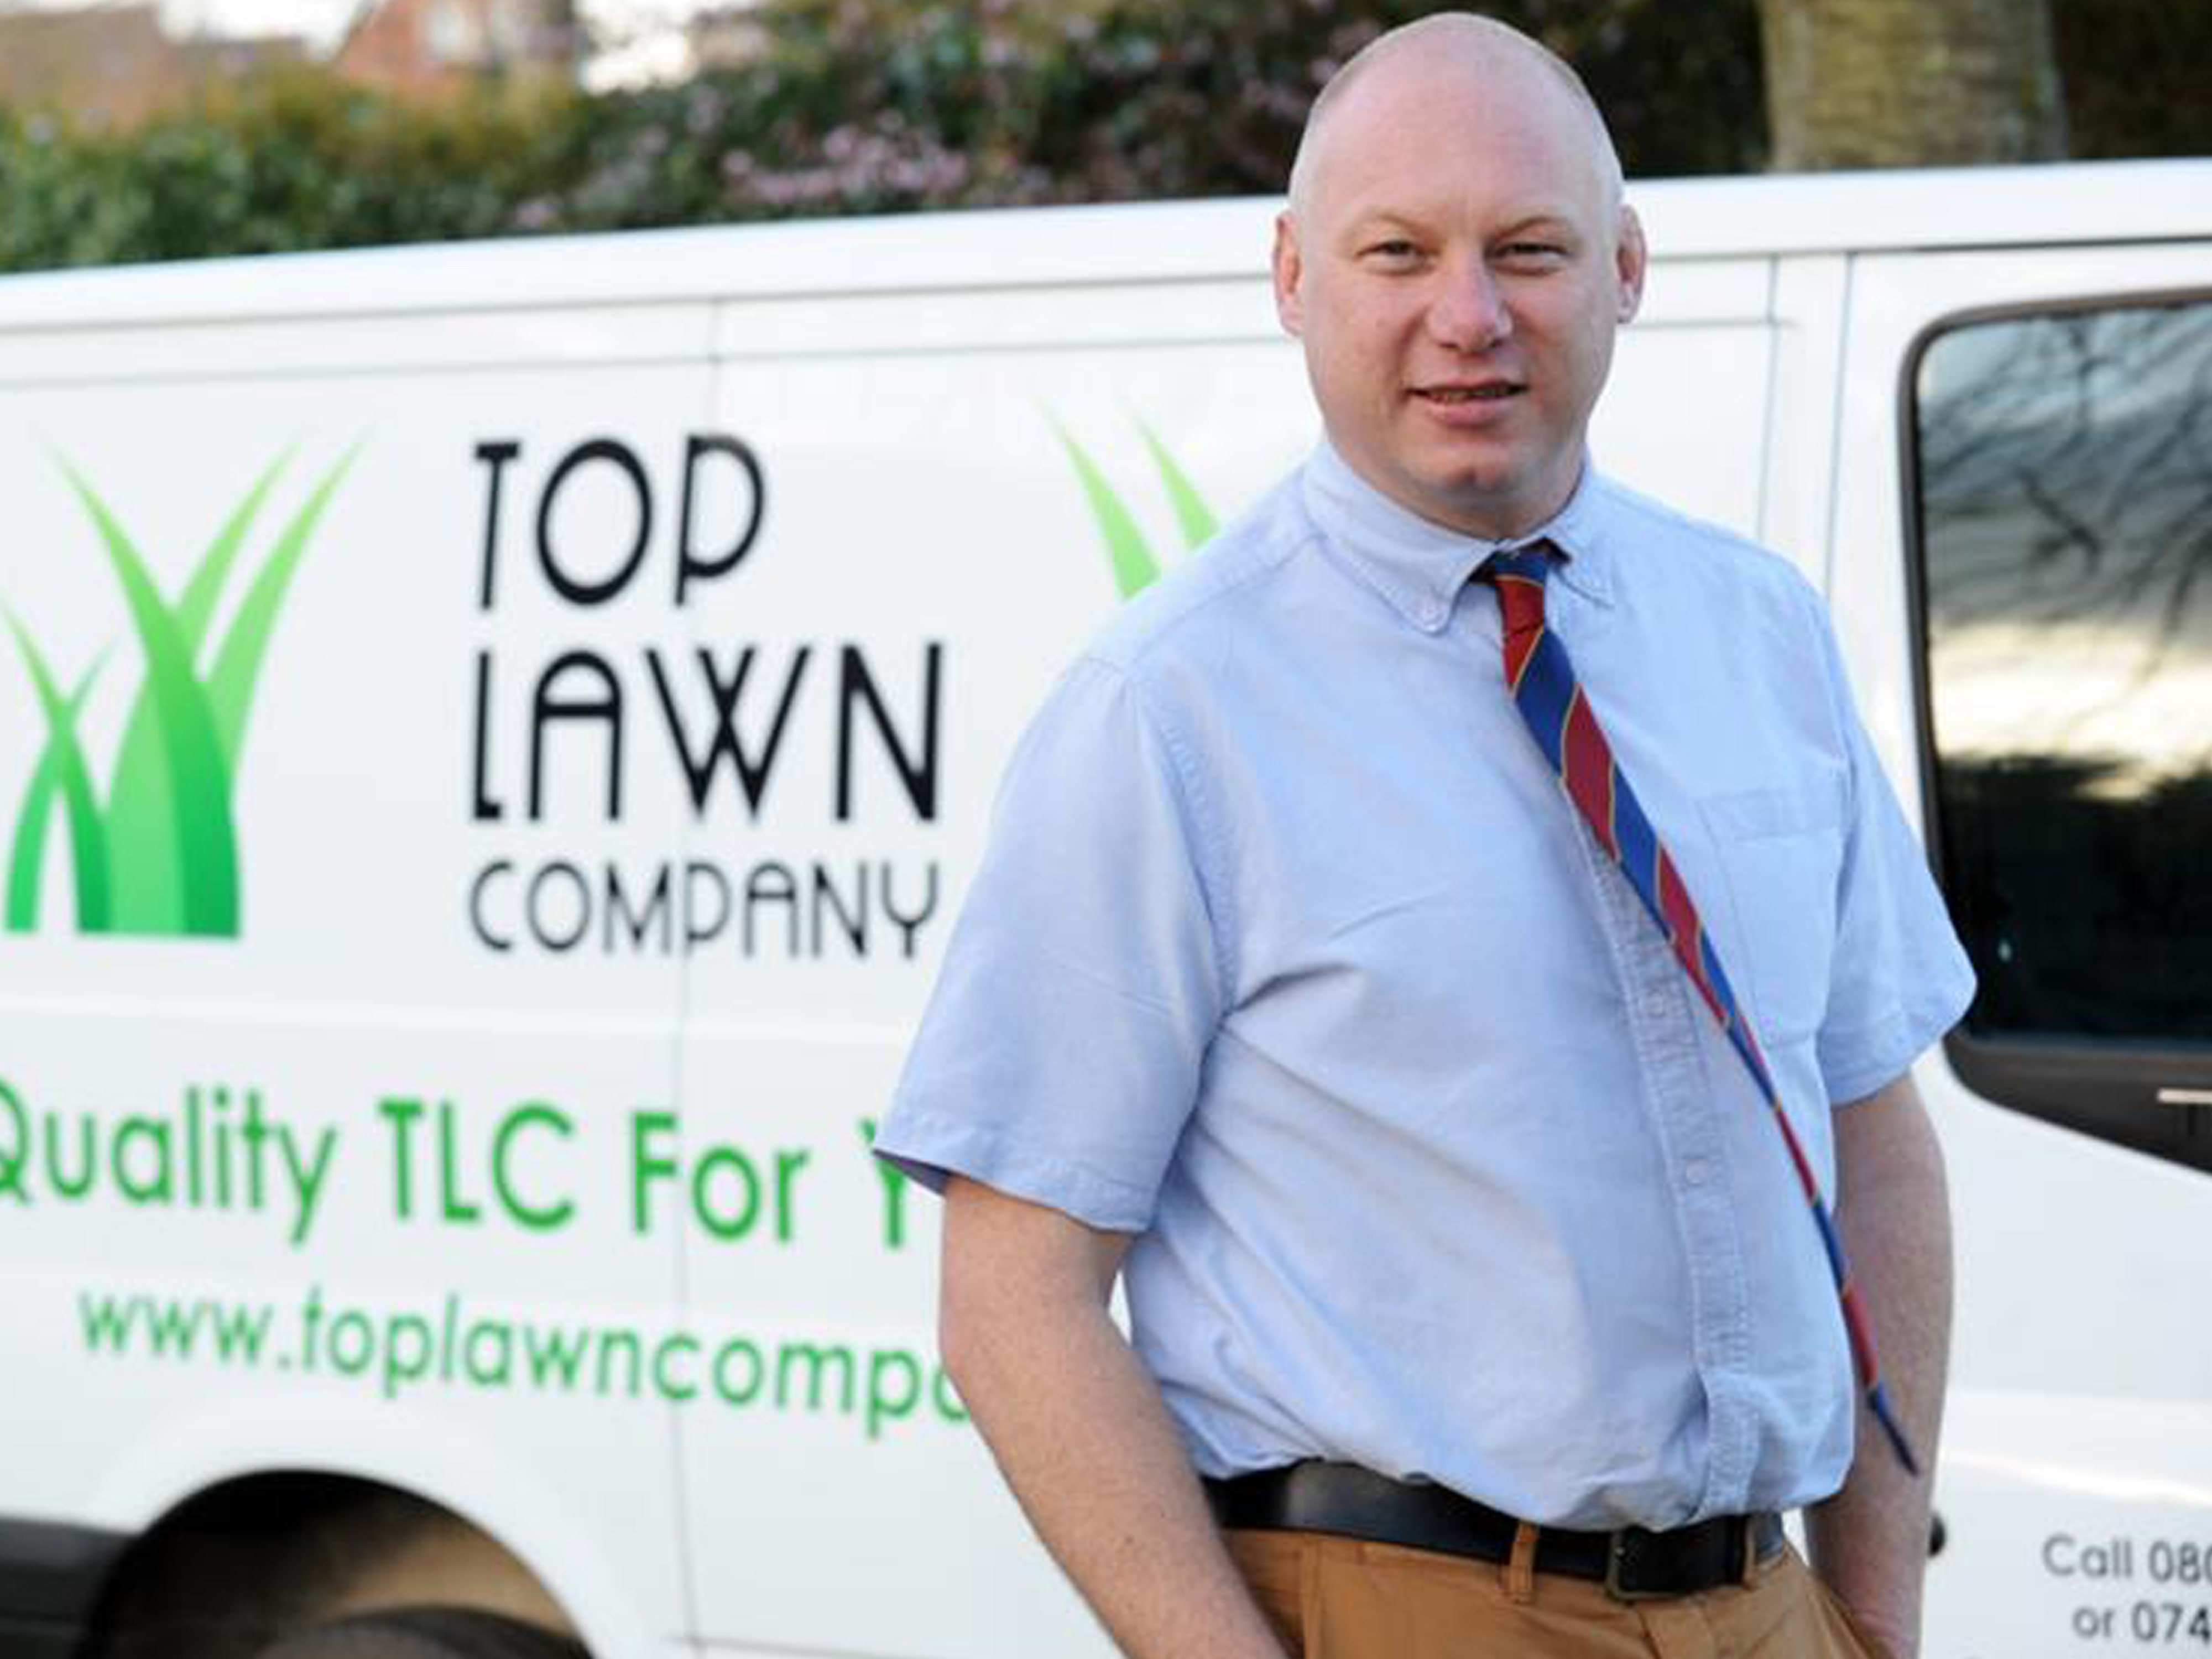 New firm to give lawns in Uttoxeter 'a little TLC'